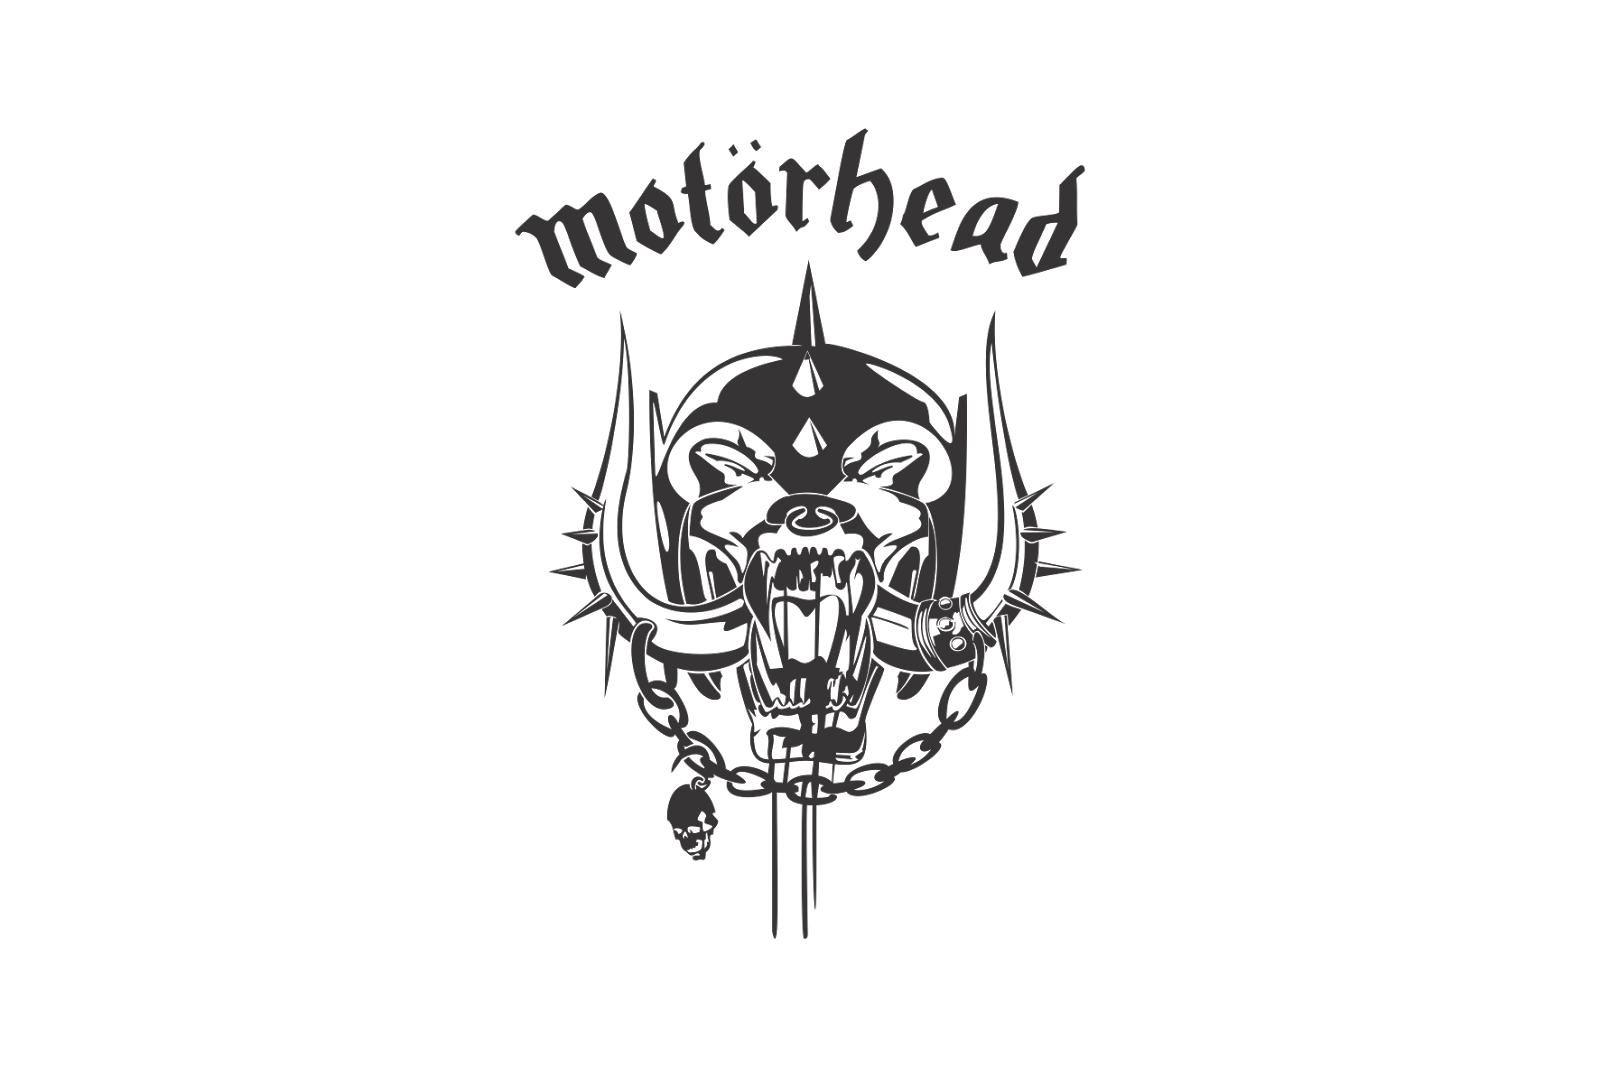 Queen band logo png. Motorhead greatest logos ever